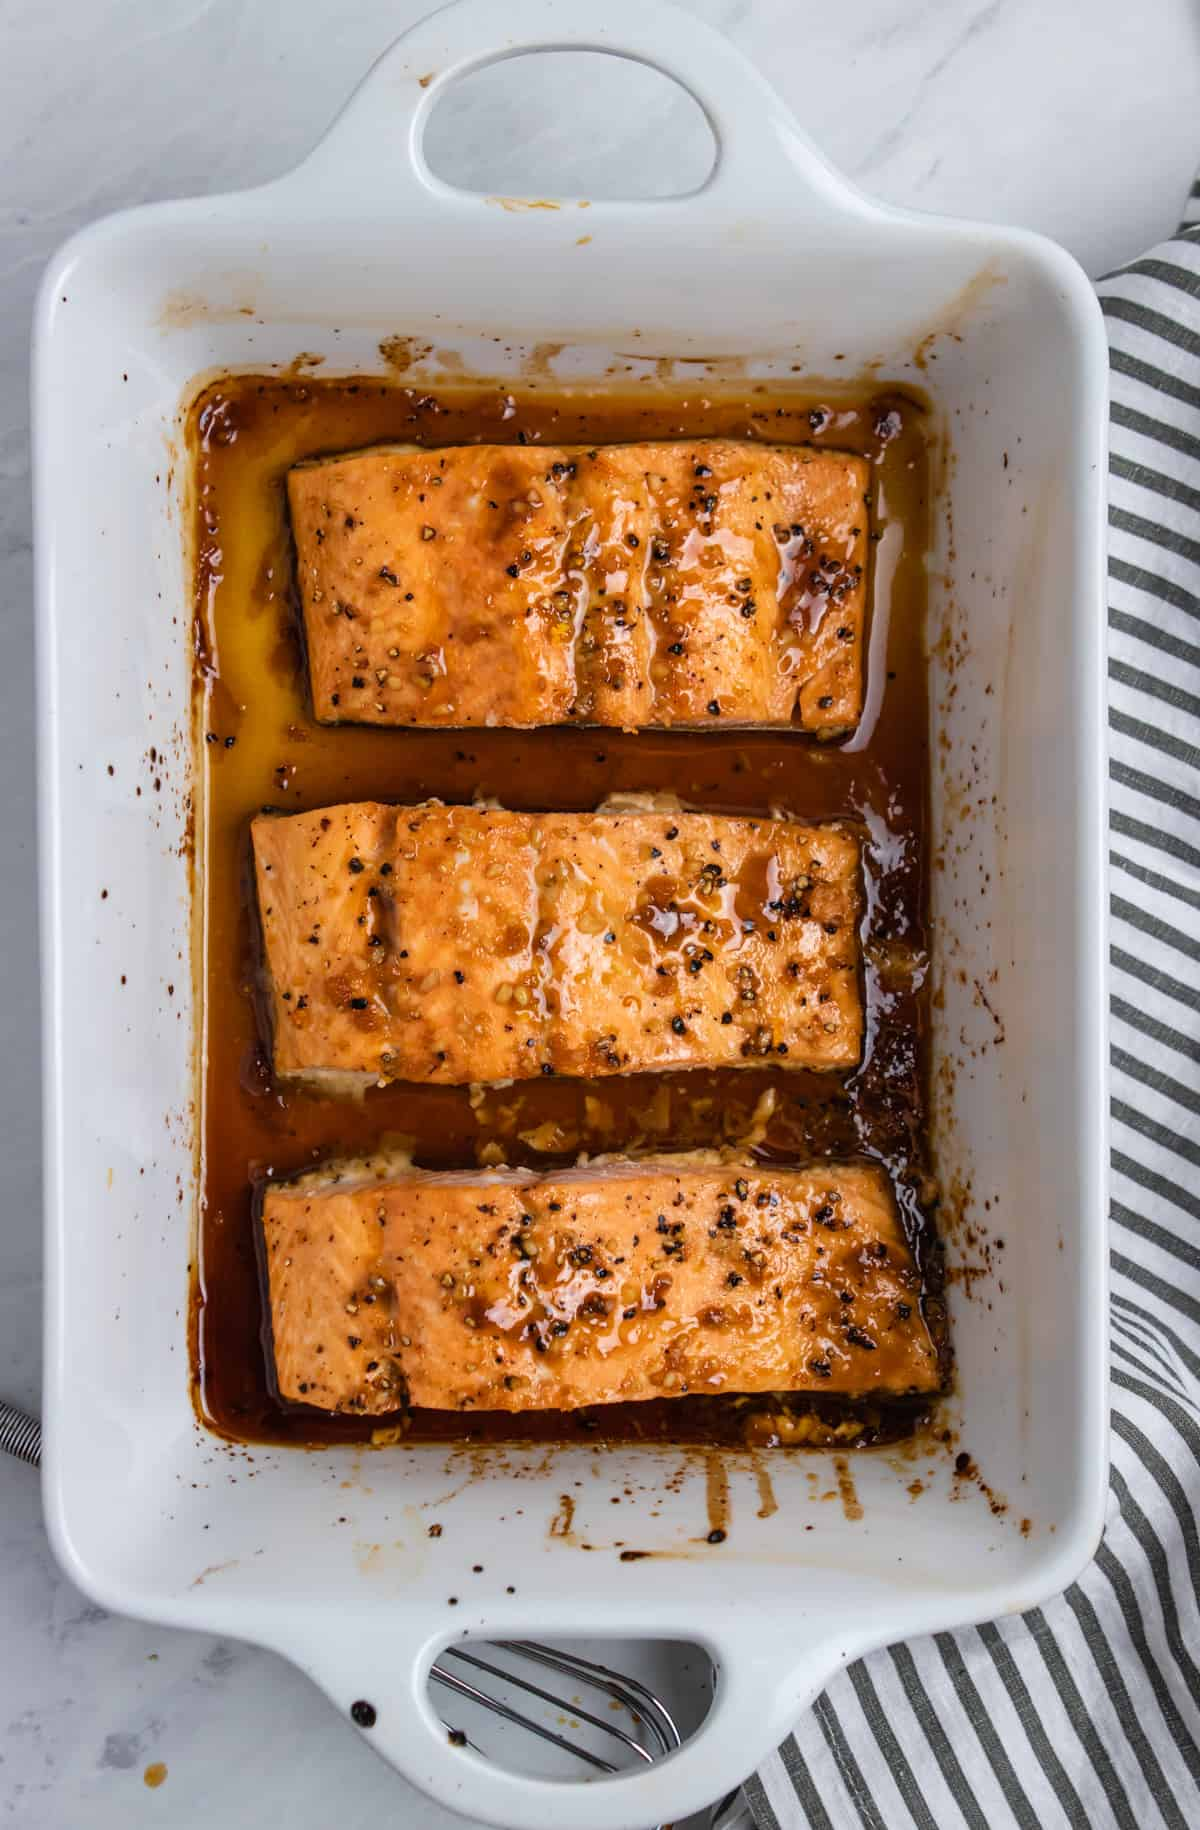 Cooked salmon with maple glaze in white dish.